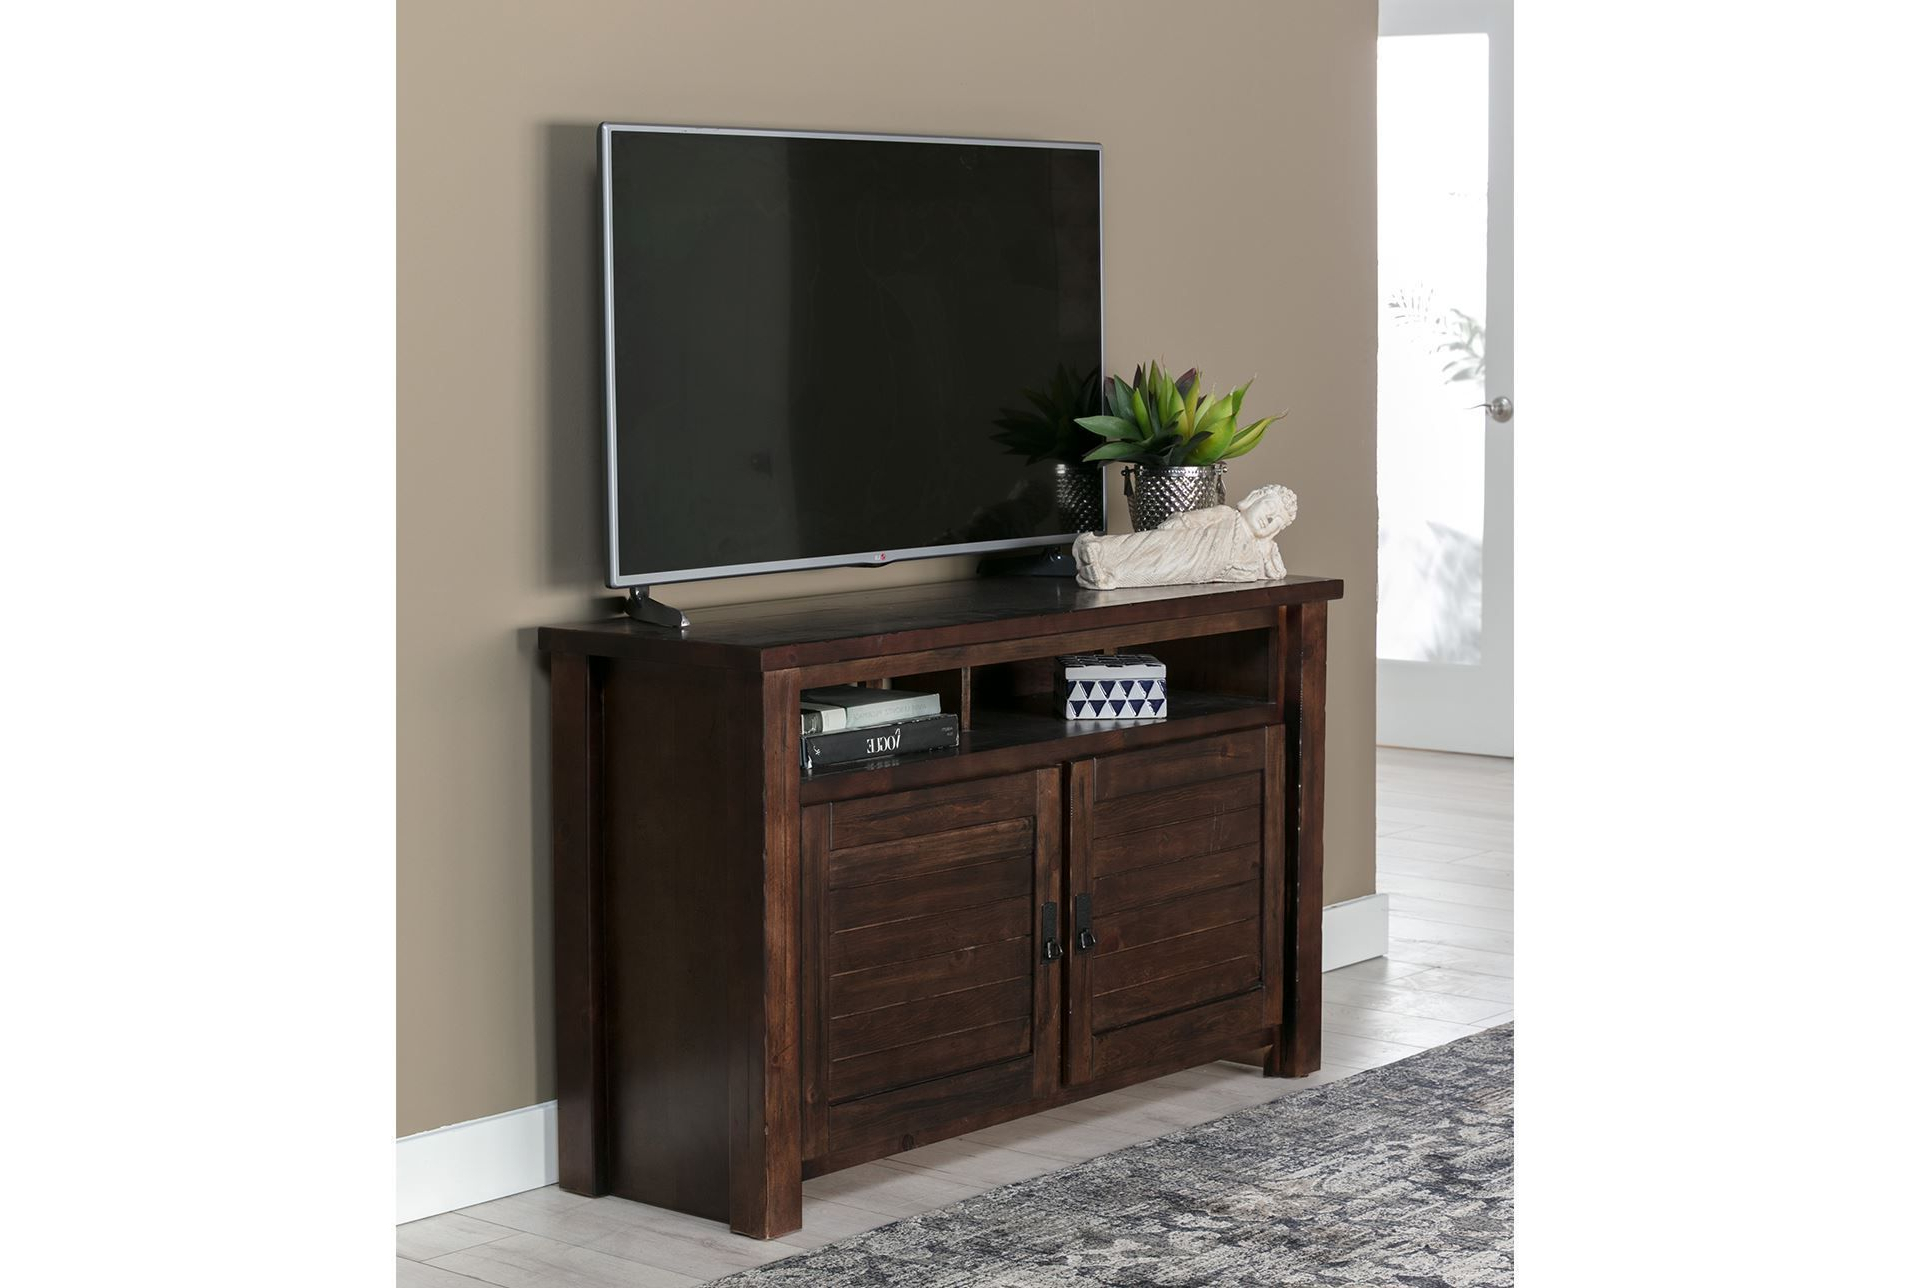 Canyon 54 Inch Tv Stand | Home Decor | Home Living Room, Tv Stand Inside Canyon 54 Inch Tv Stands (View 2 of 20)